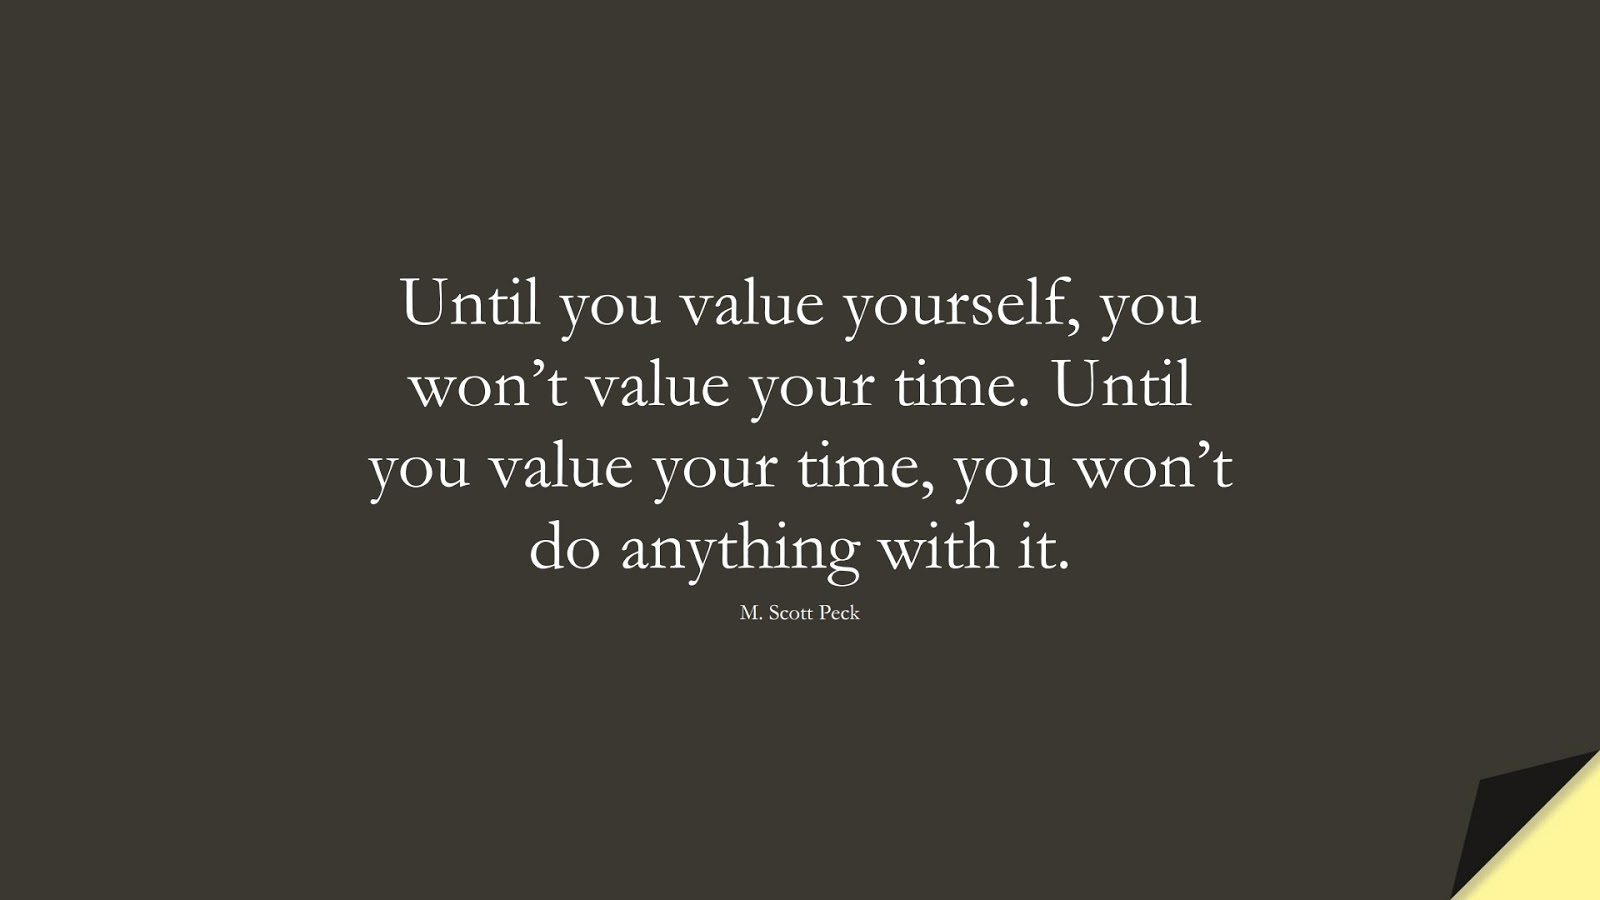 Until you value yourself, you won't value your time. Until you value your time, you won't do anything with it. (M. Scott Peck);  #LoveYourselfQuotes